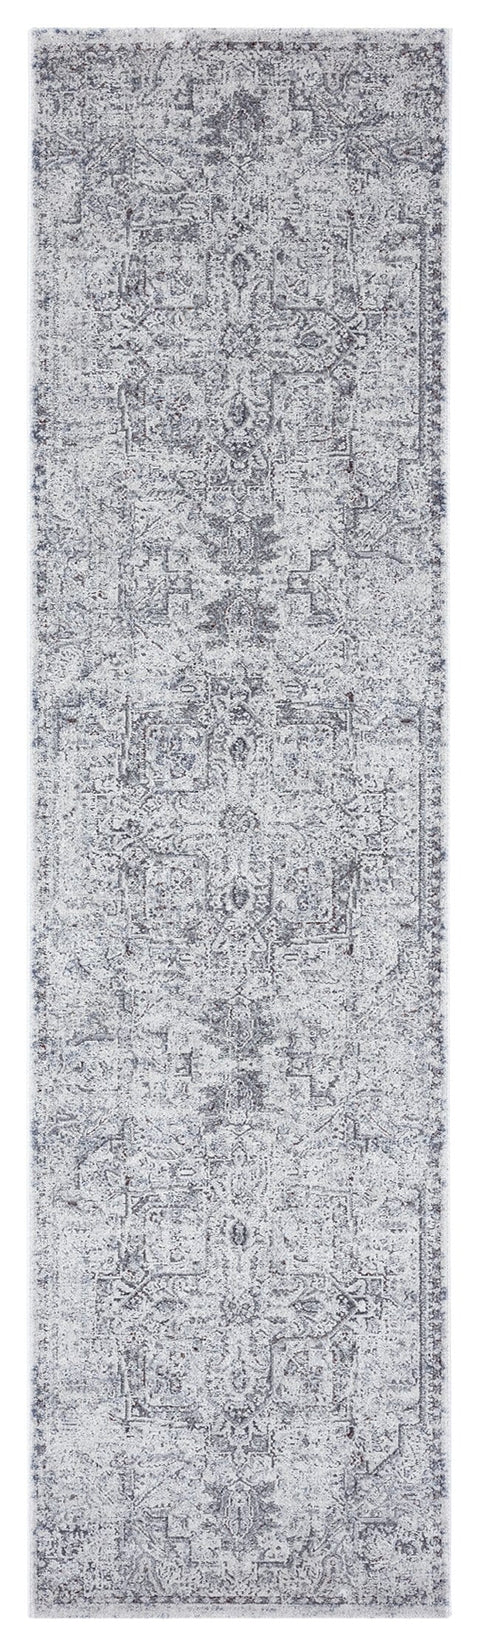 elania-grey-blue-traditional-distressed-medallion-runner-rug-missamara.jpg